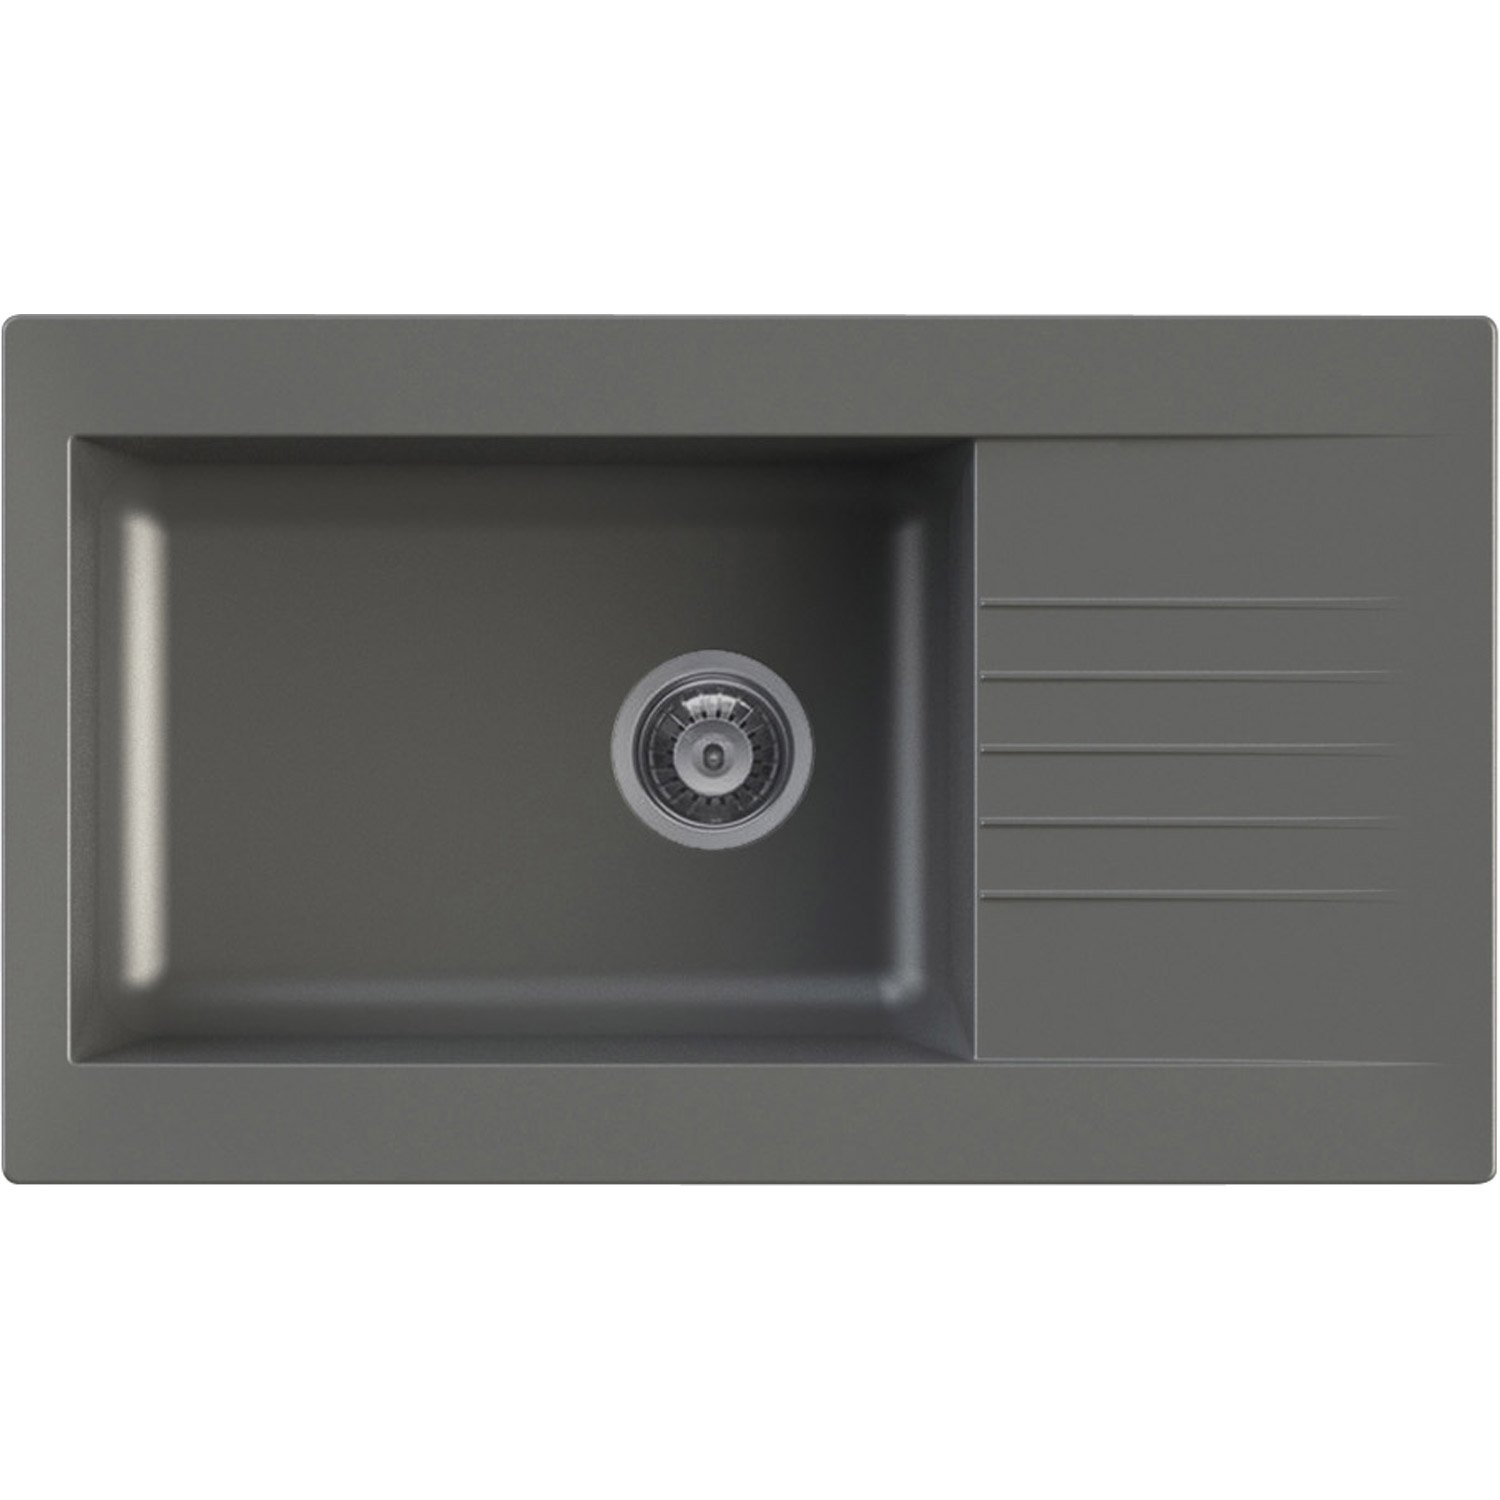 Evier Inox Solaire Leroy Merlin Pearlfection Fr